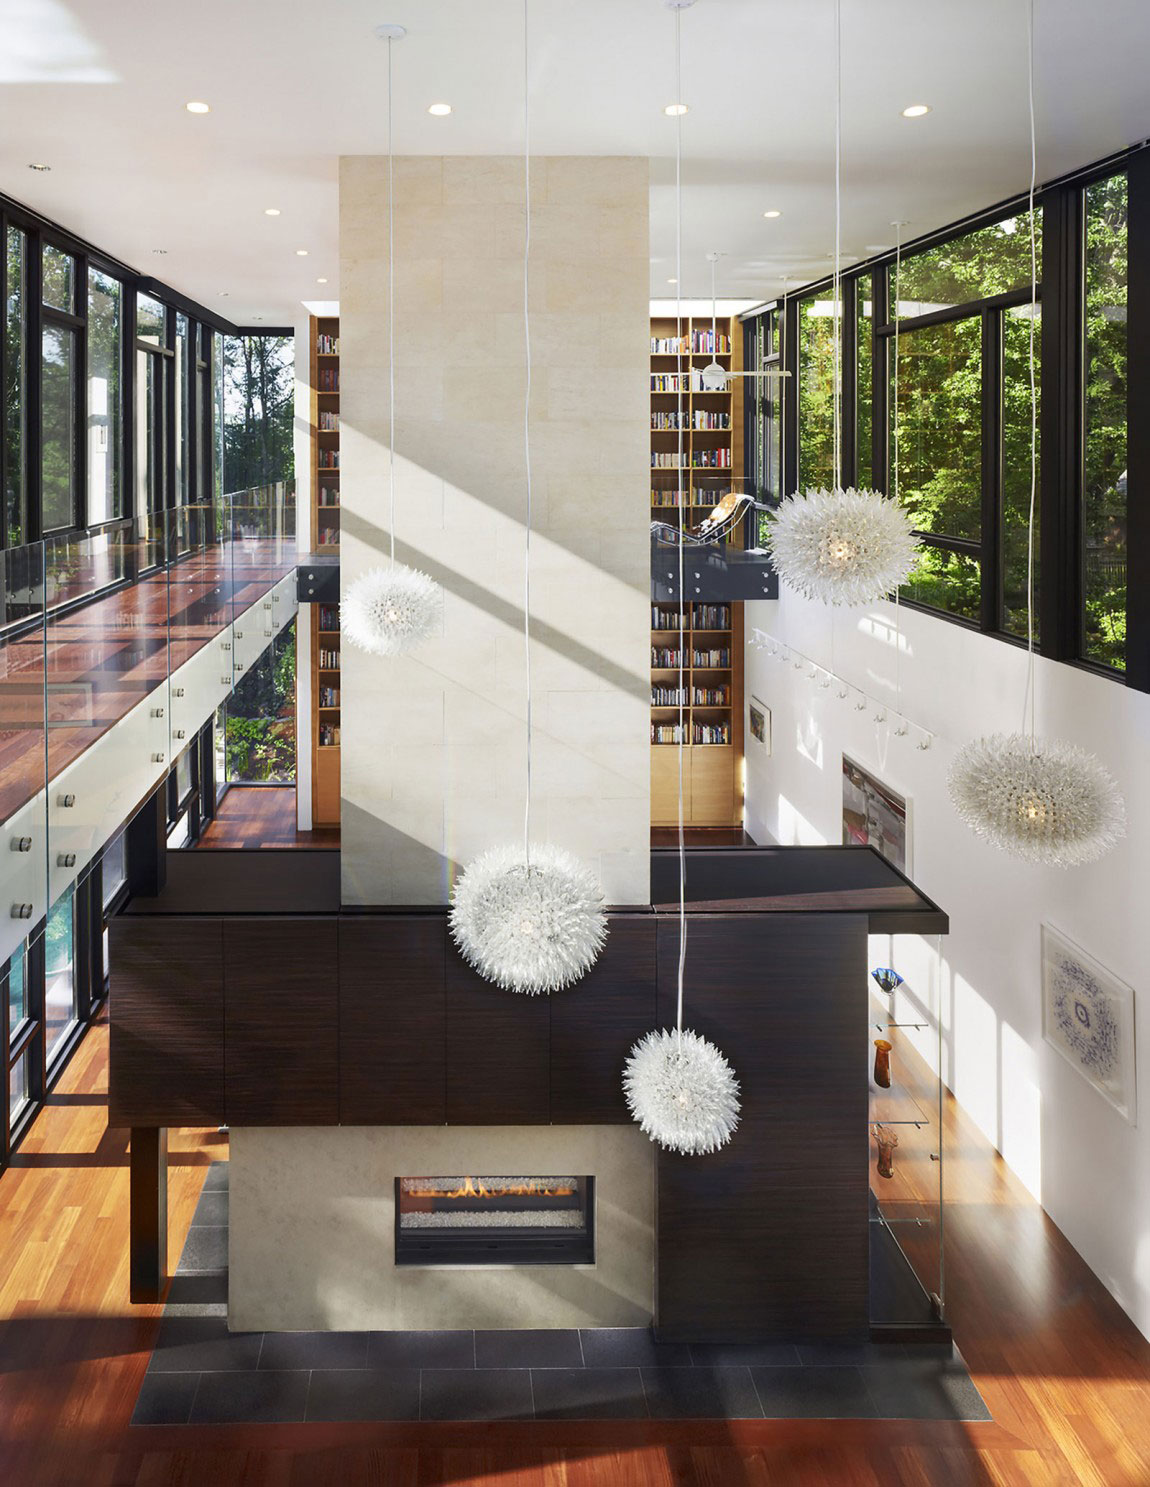 The Brandywine-house-is-an-interior-design-and-architecture-inspiration-12 The Brandywine house is an inspiration for interior design and architecture